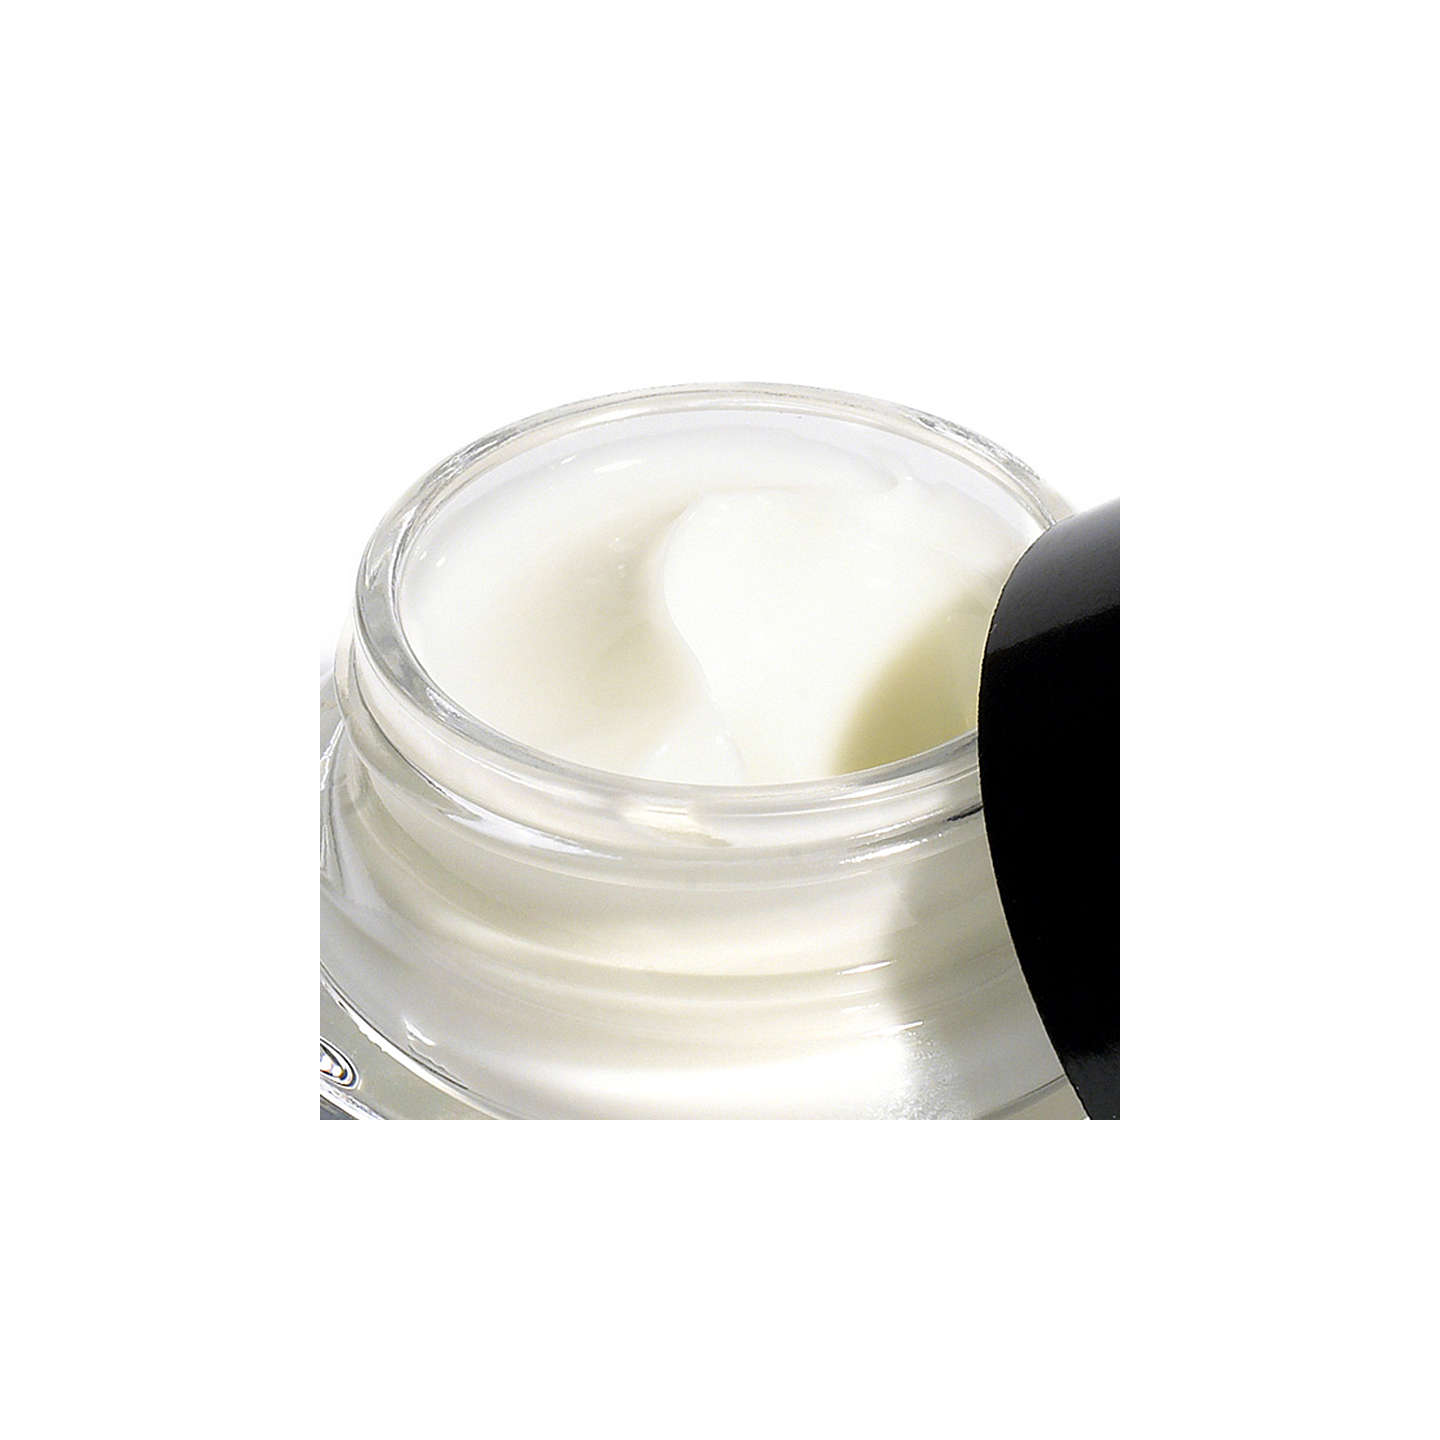 BuyBobbi Brown Hydrating Eye Cream, 15ml Online at johnlewis.com